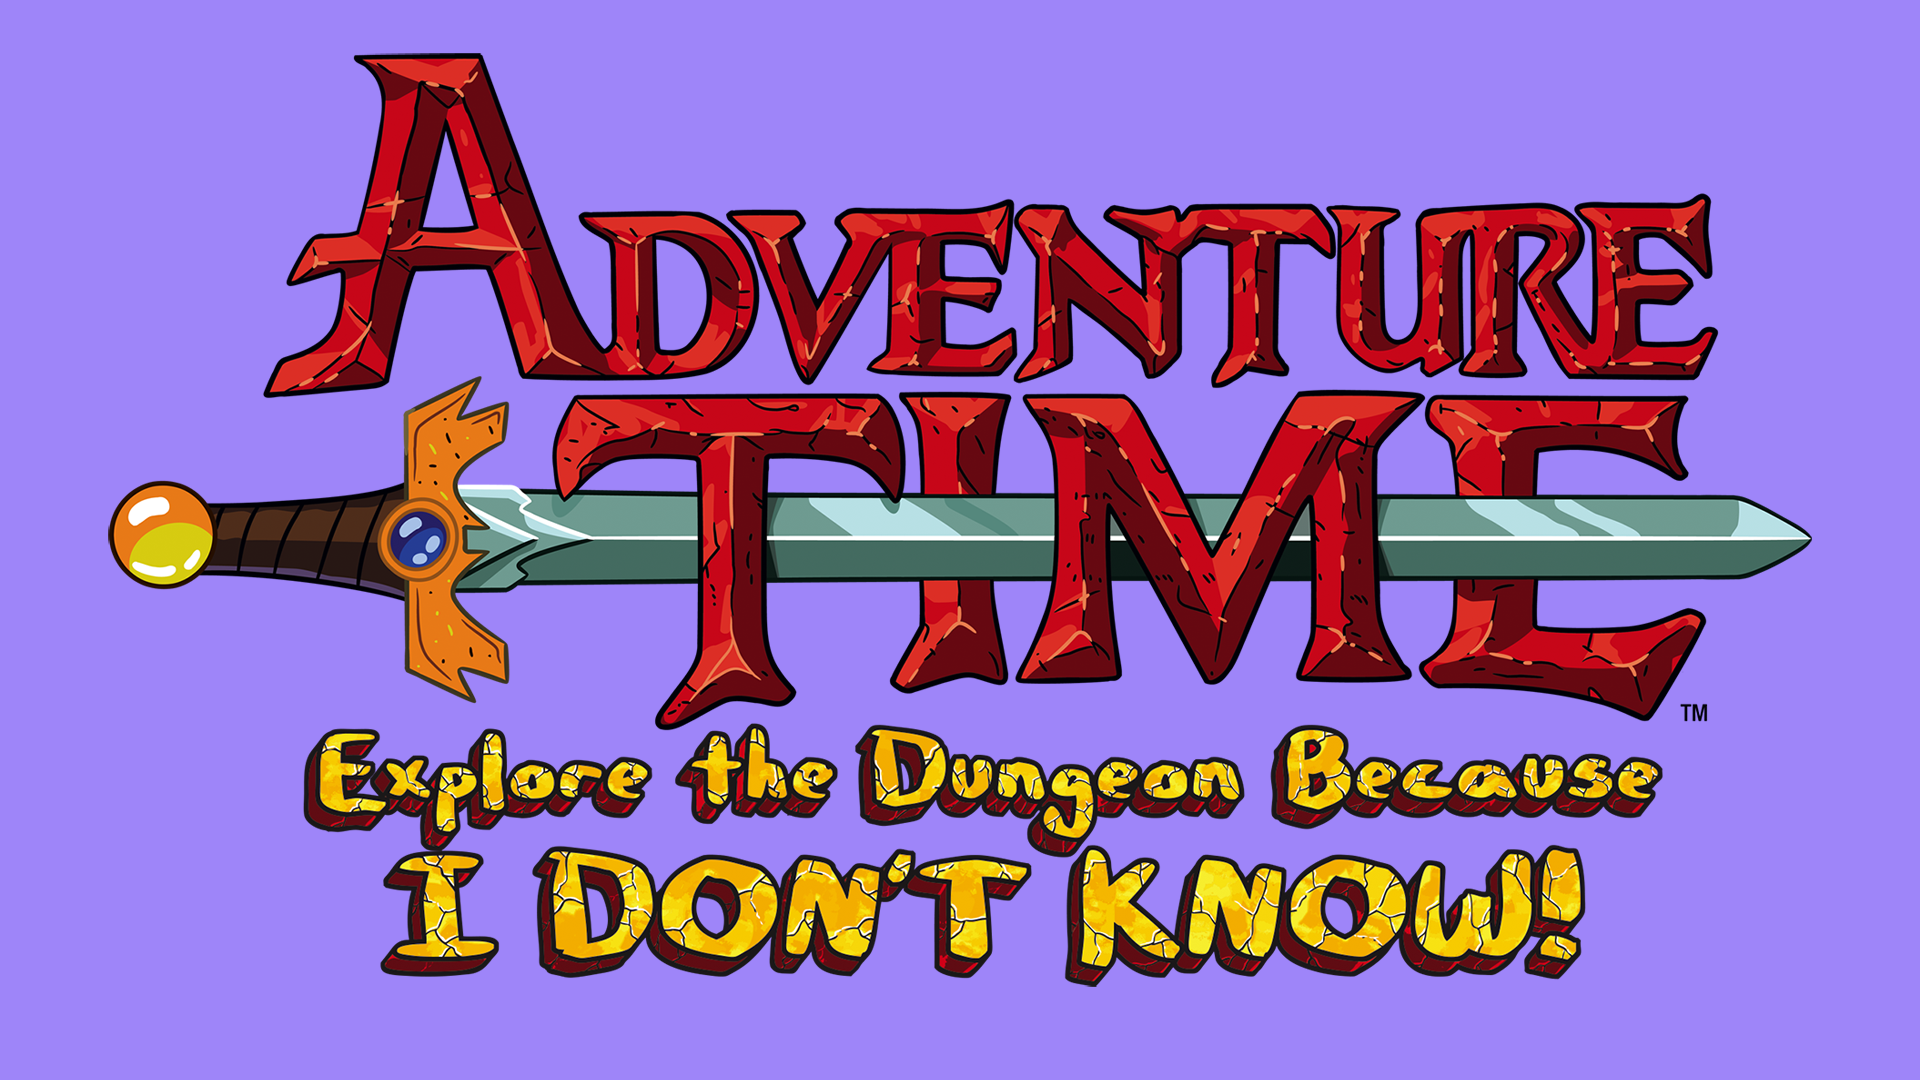 Adventure Time: Explore the Dungeon Because I DON'T KNOW! Logo